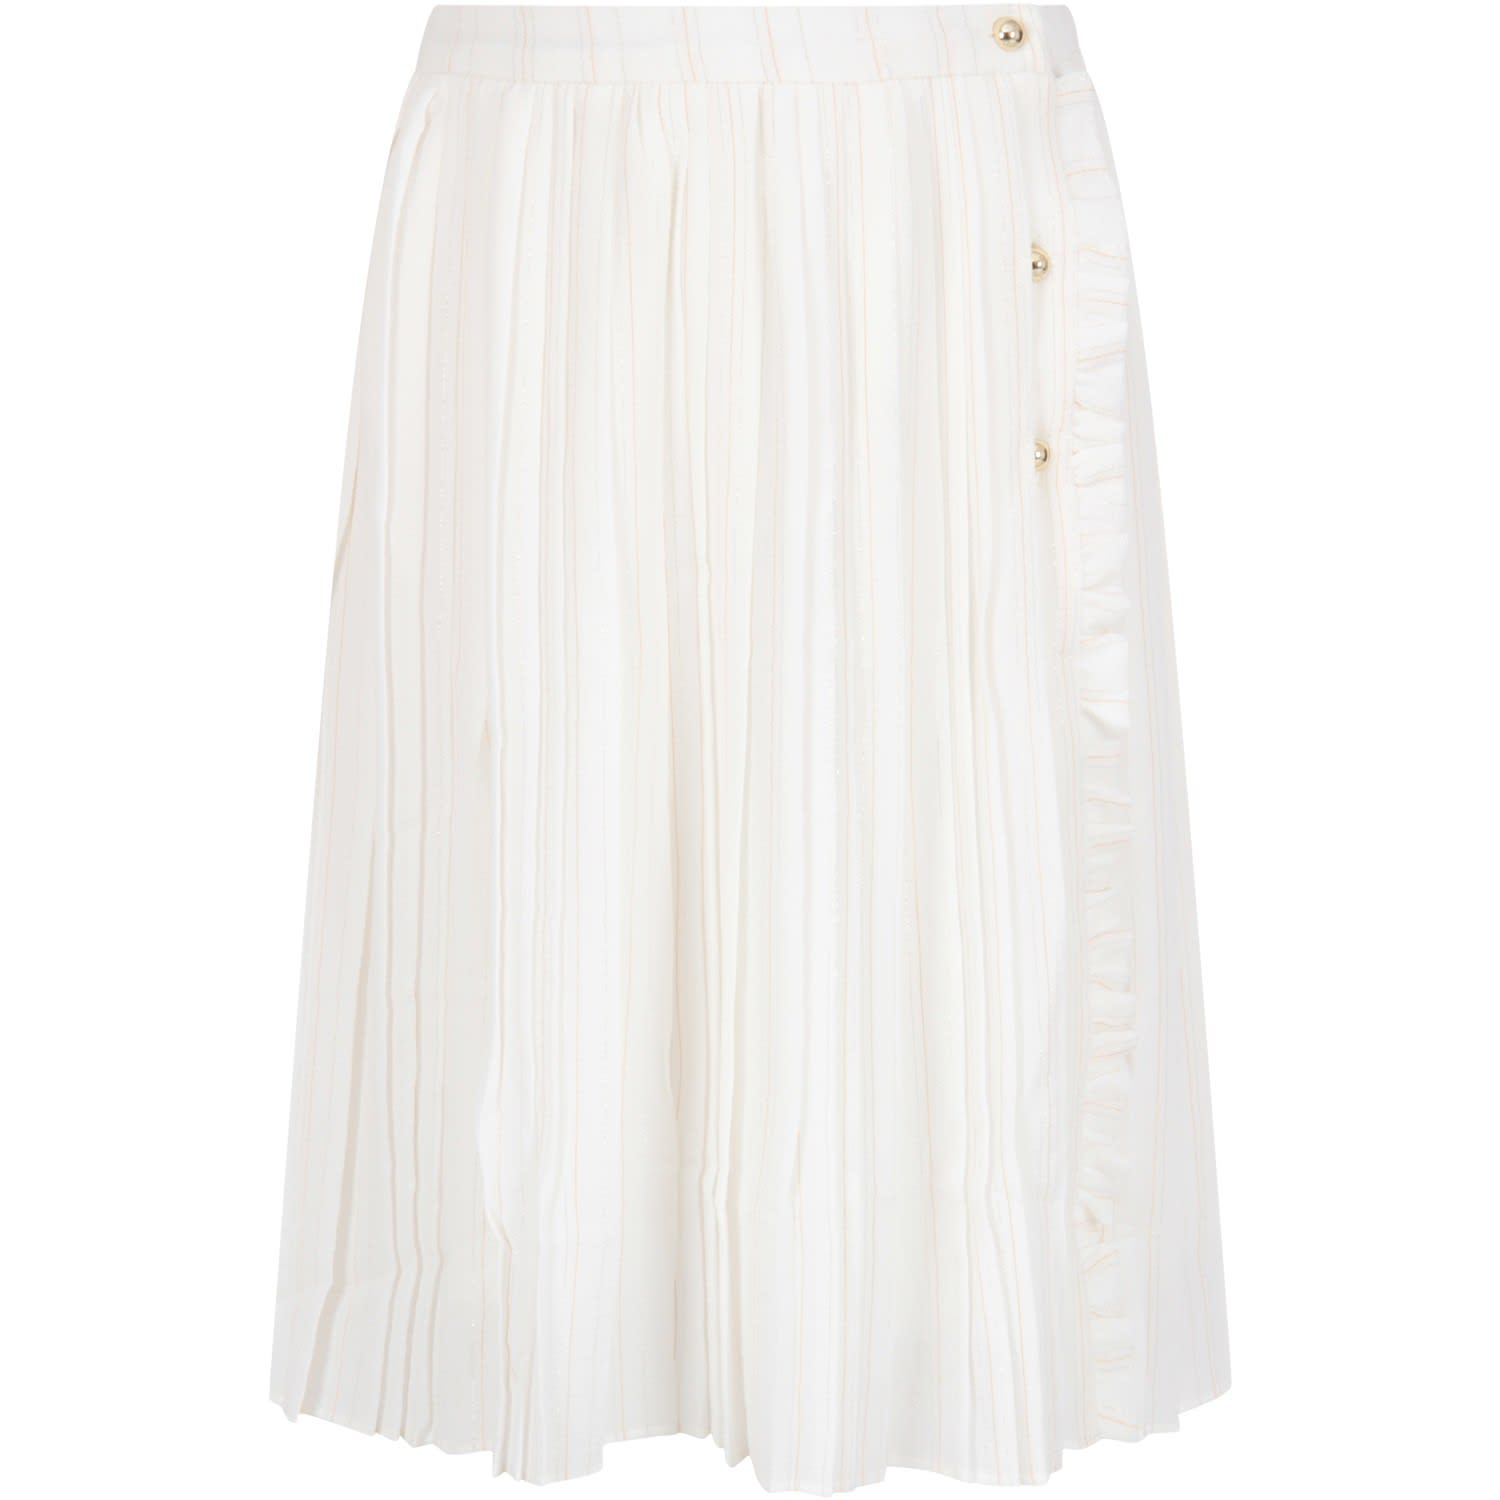 Color: White White pleated skirt, with elasticized wasitband and closure with buttons, on the front. It is embellished with lurex stripes all-over. 97% Polyester 3% Elastan. Machine wash at 30°C.